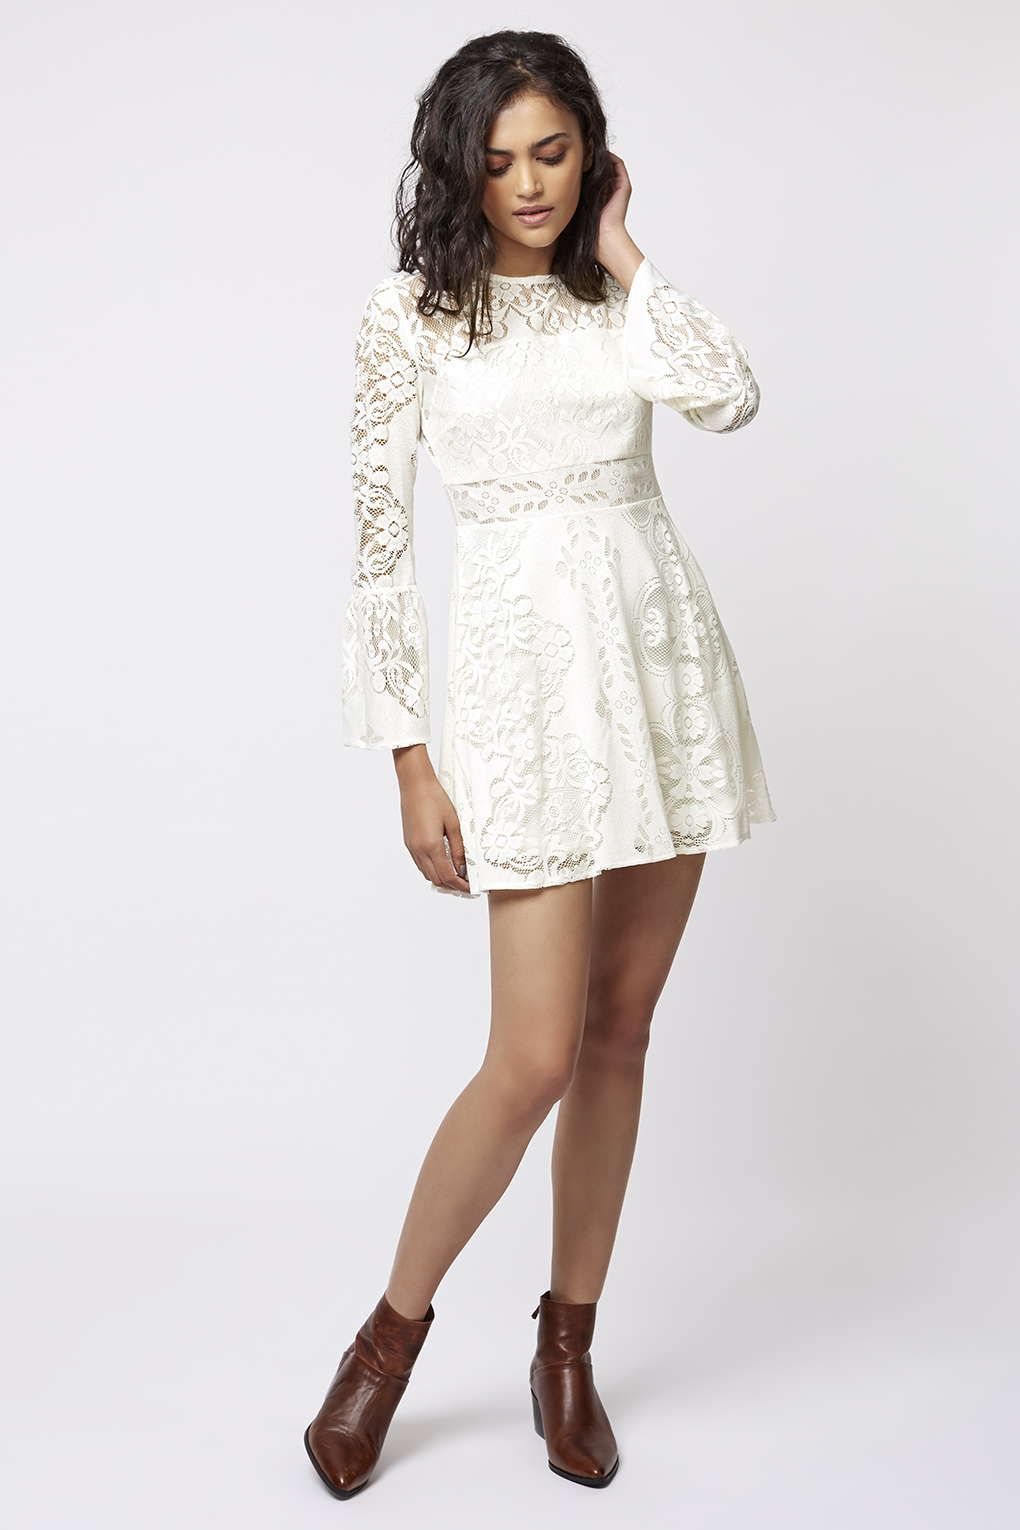 PETITE Fluted Sleeve Lace Dress - Dresses - Clothing - Topshop